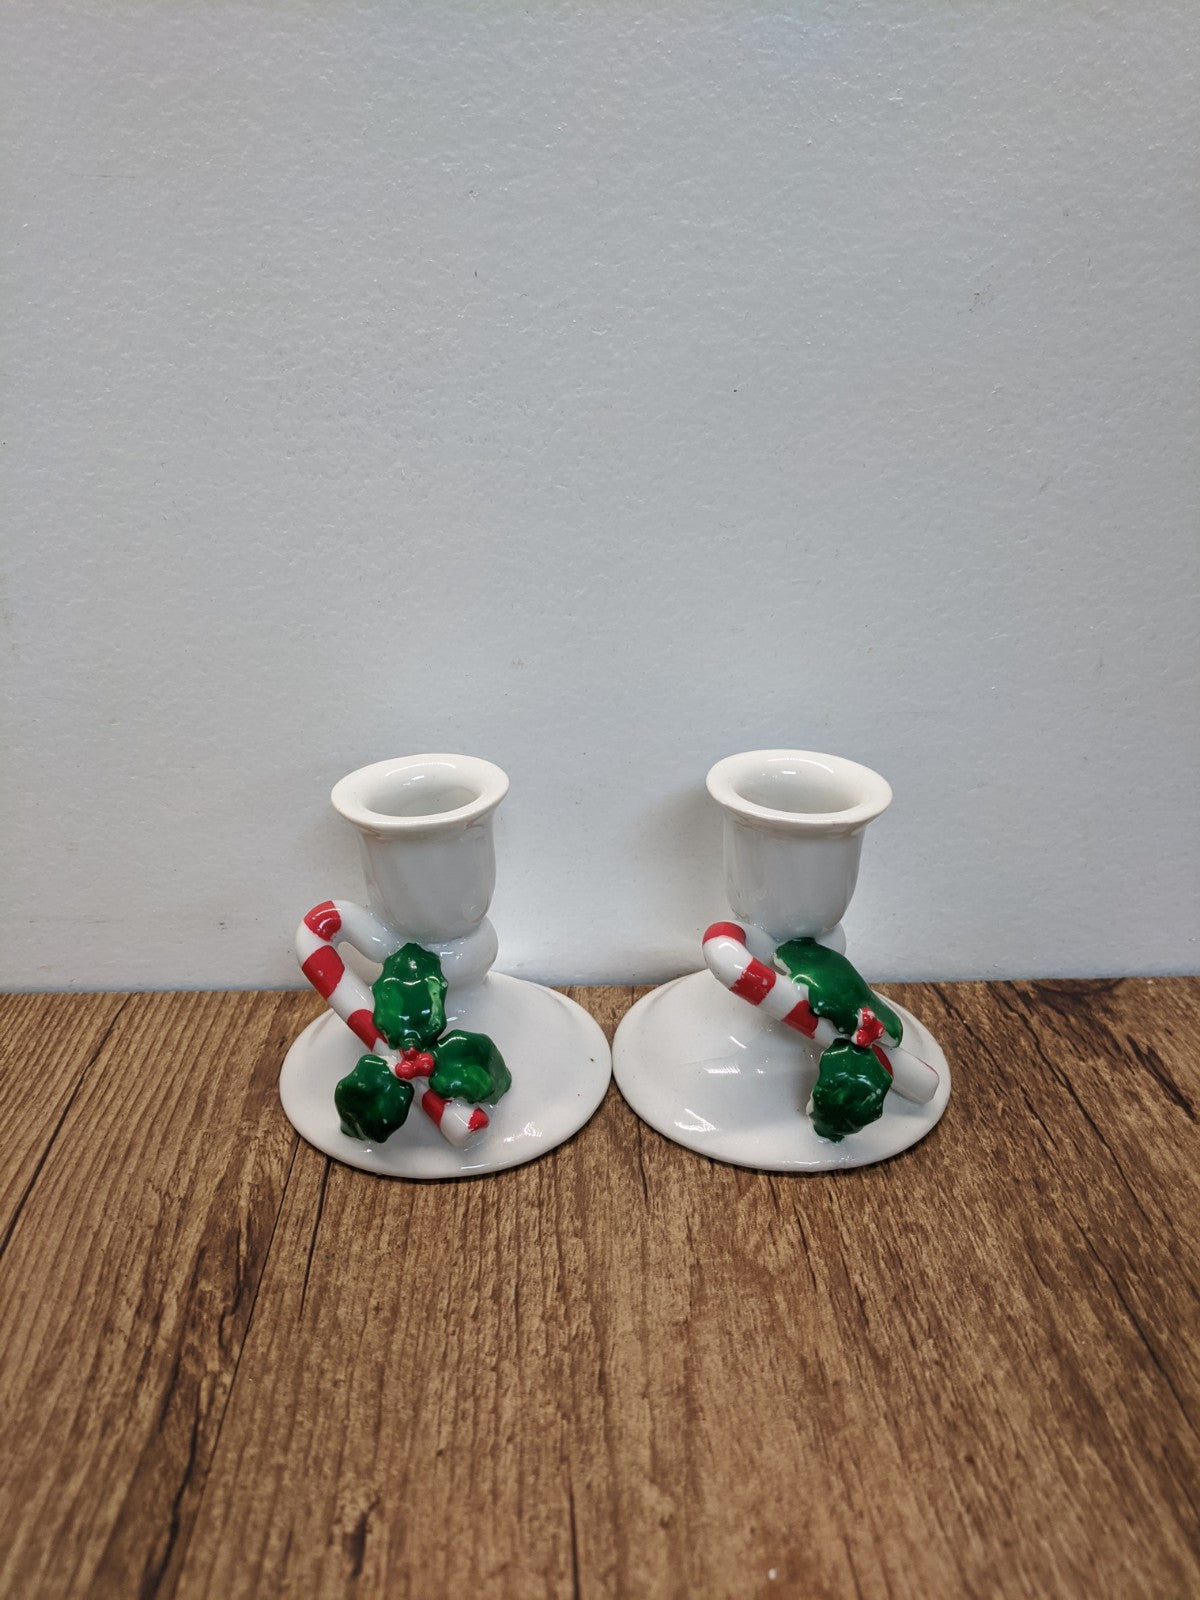 (2) Candy Cane Candle Holders